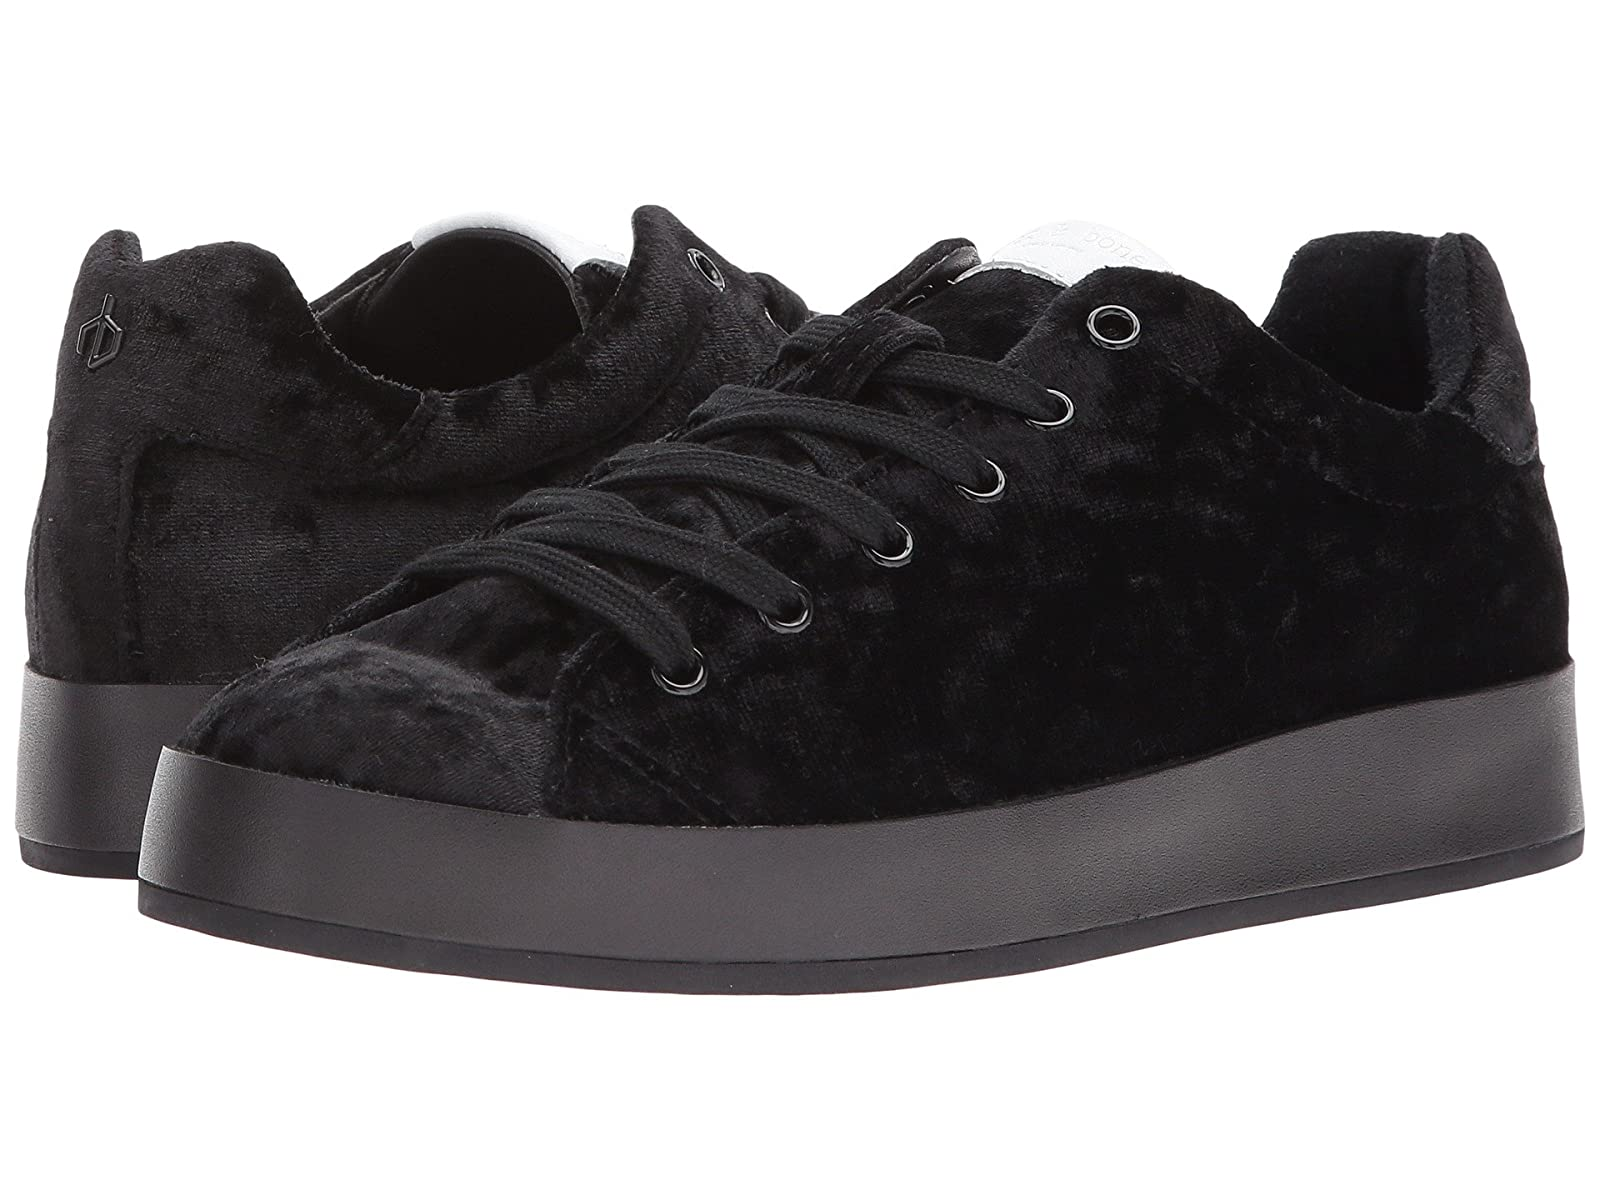 rag & bone RB1 LowCheap and distinctive eye-catching shoes